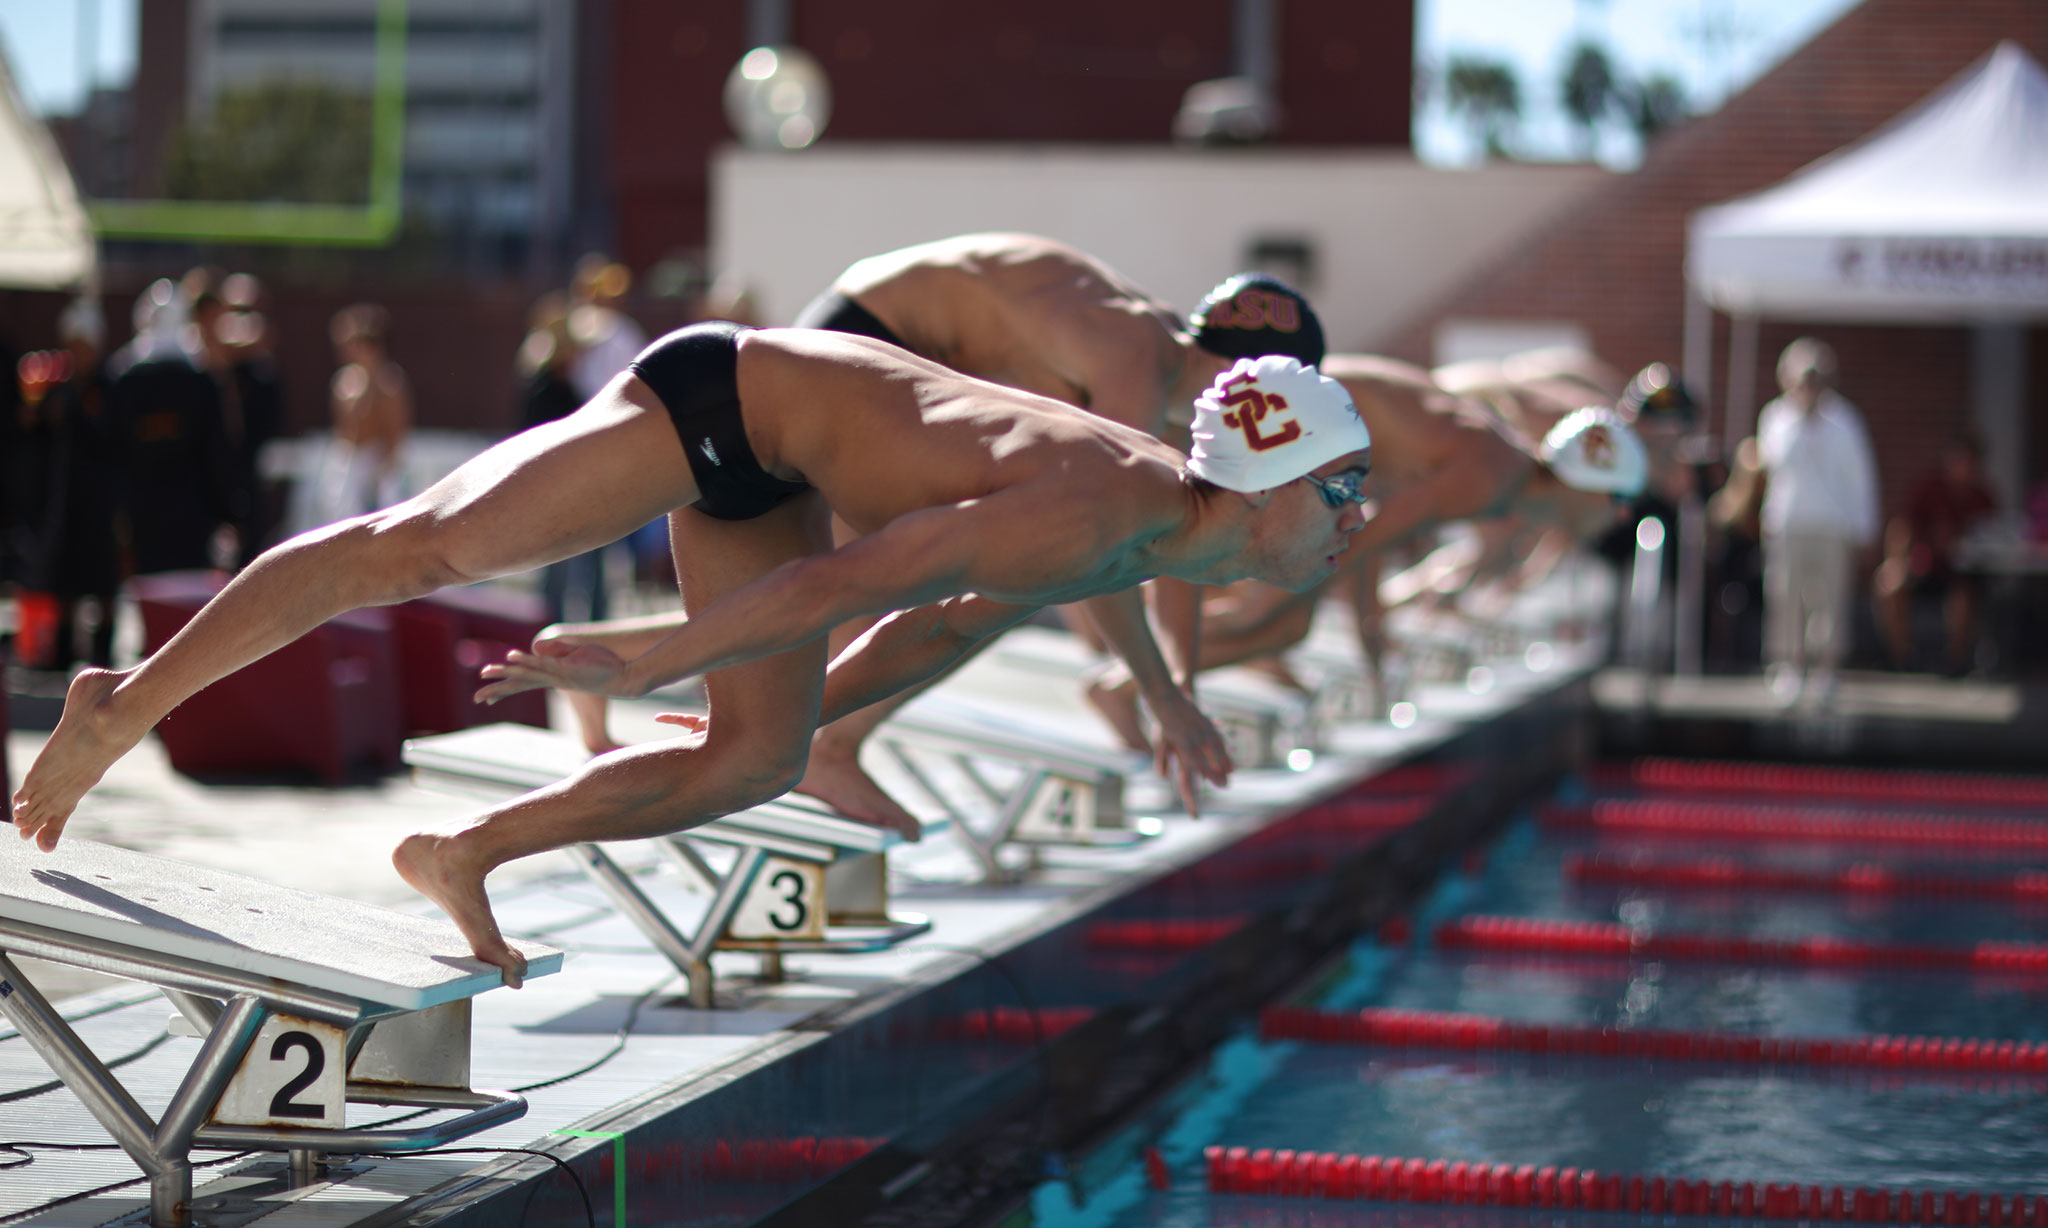 Usc sets records takes fourth at ncaas daily trojan